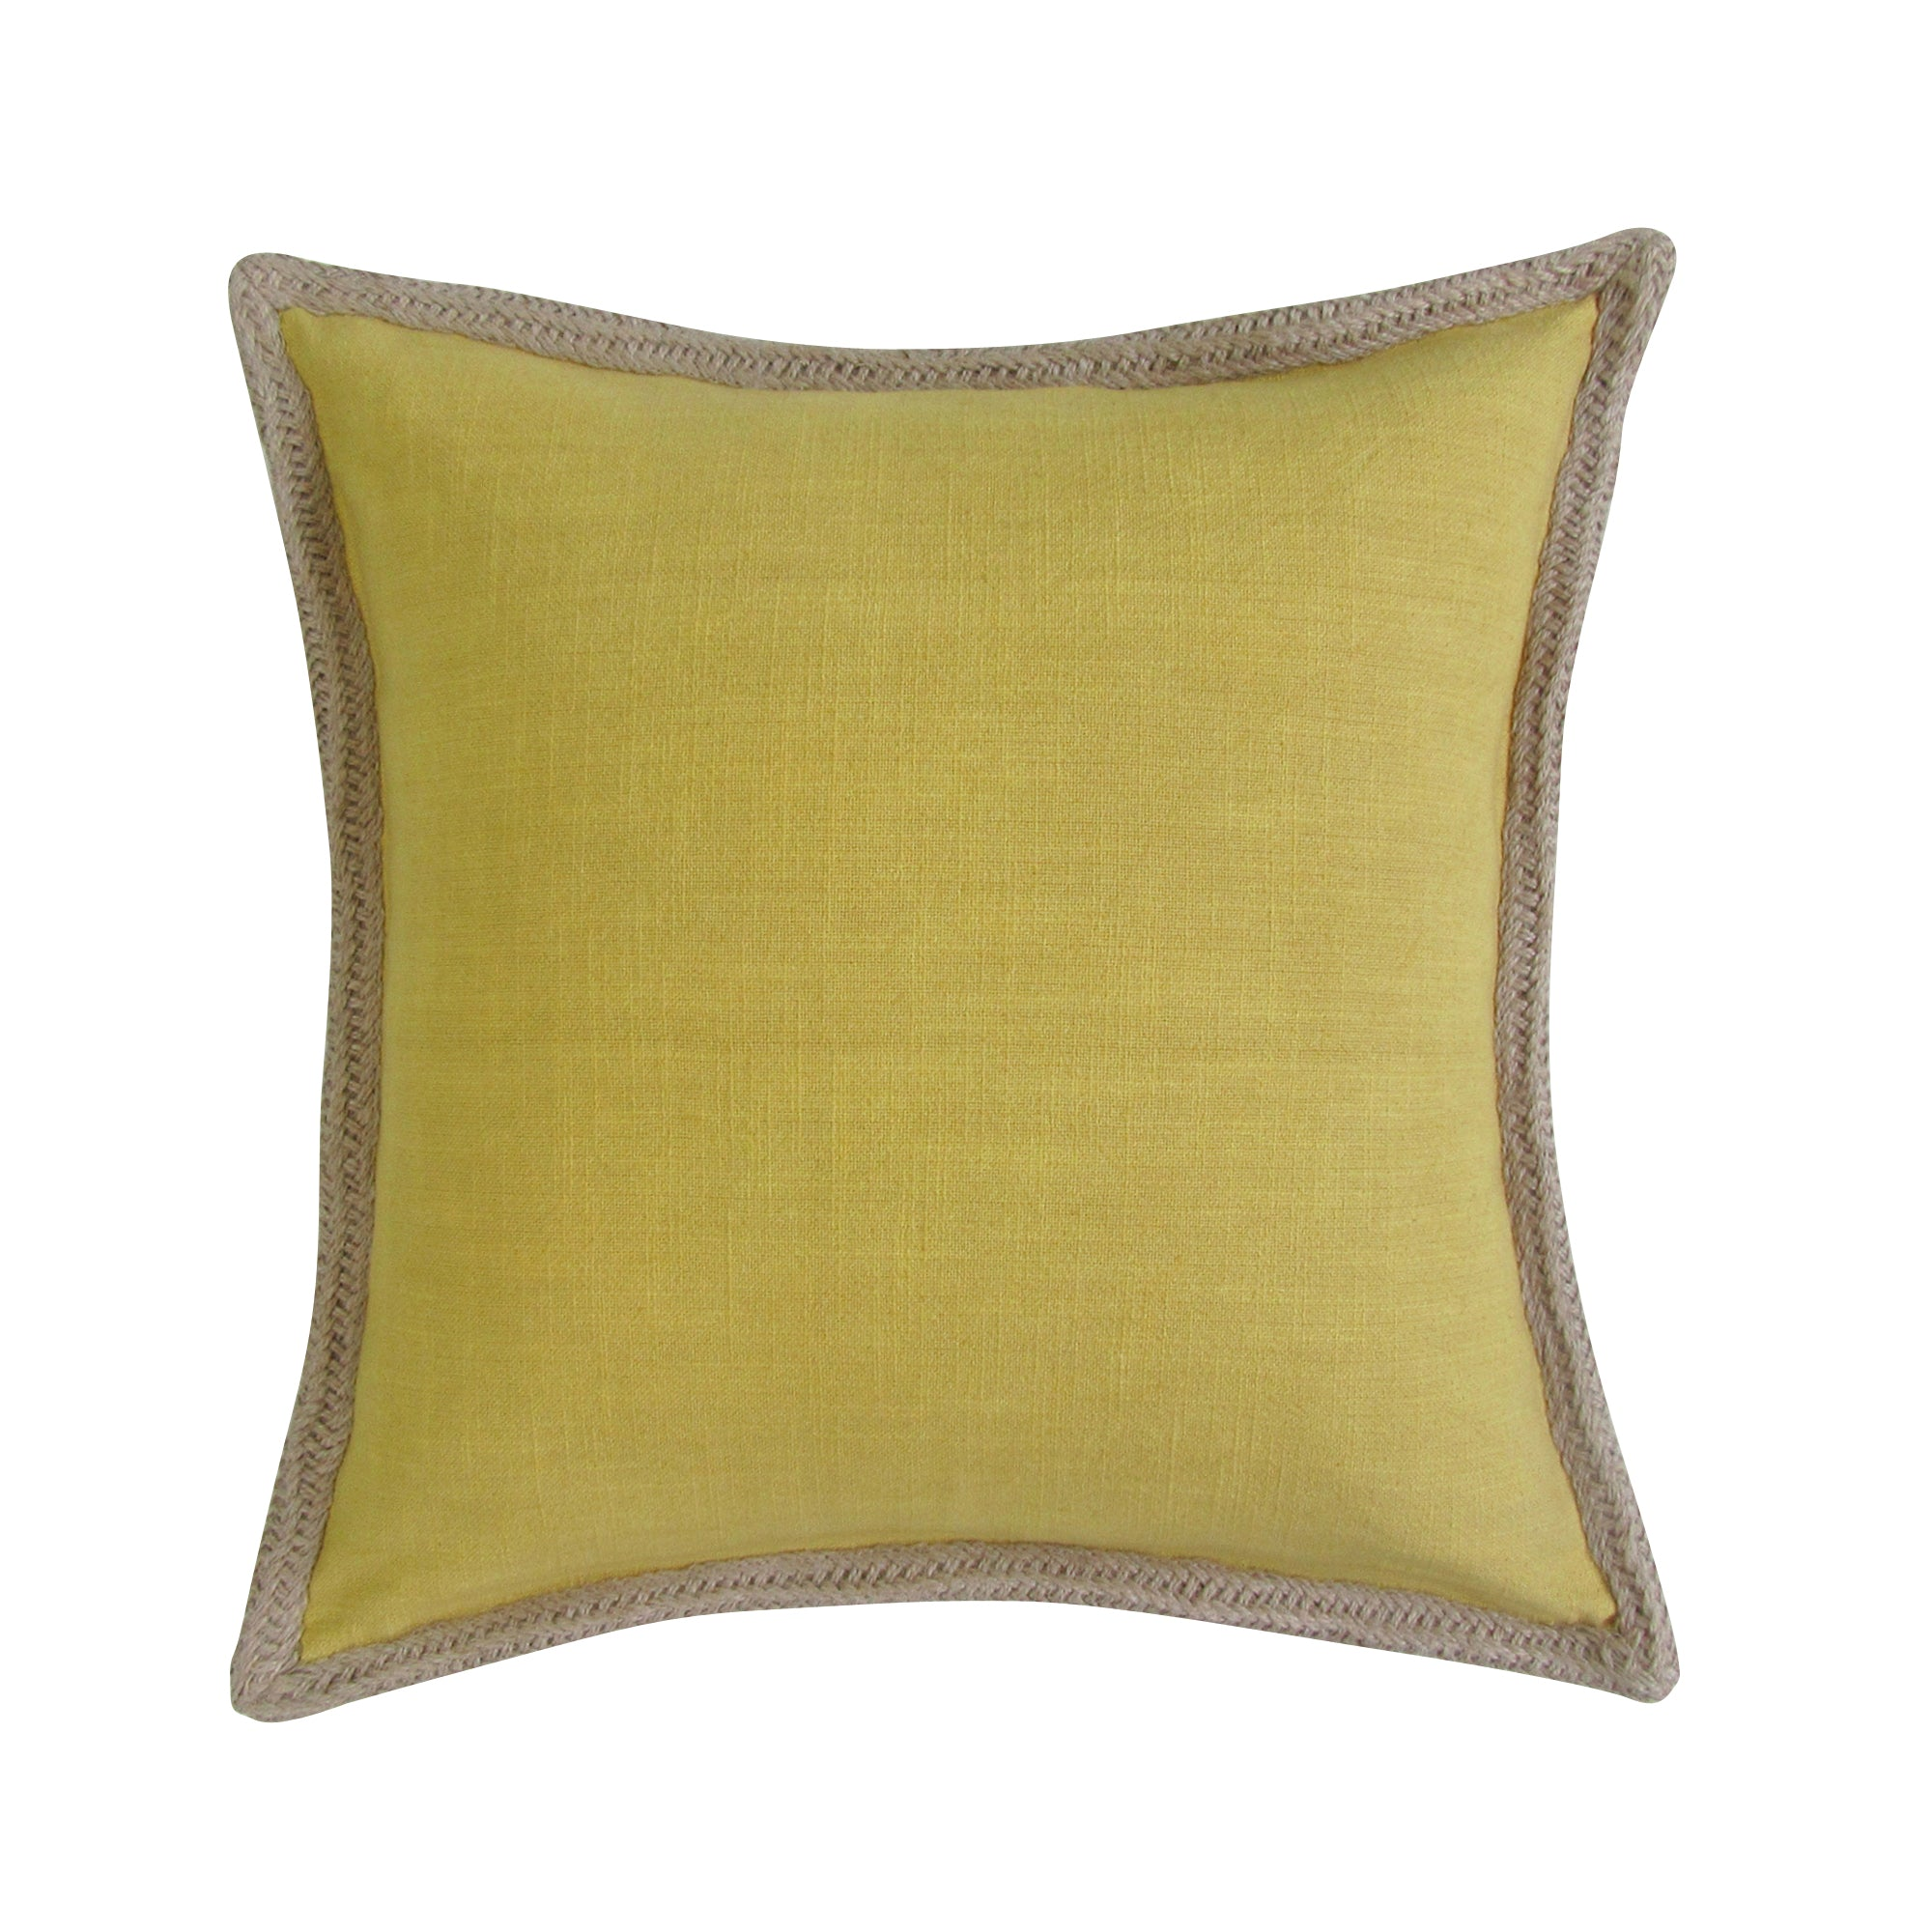 Jute Border, Square Accent Pillow - MUSTARD